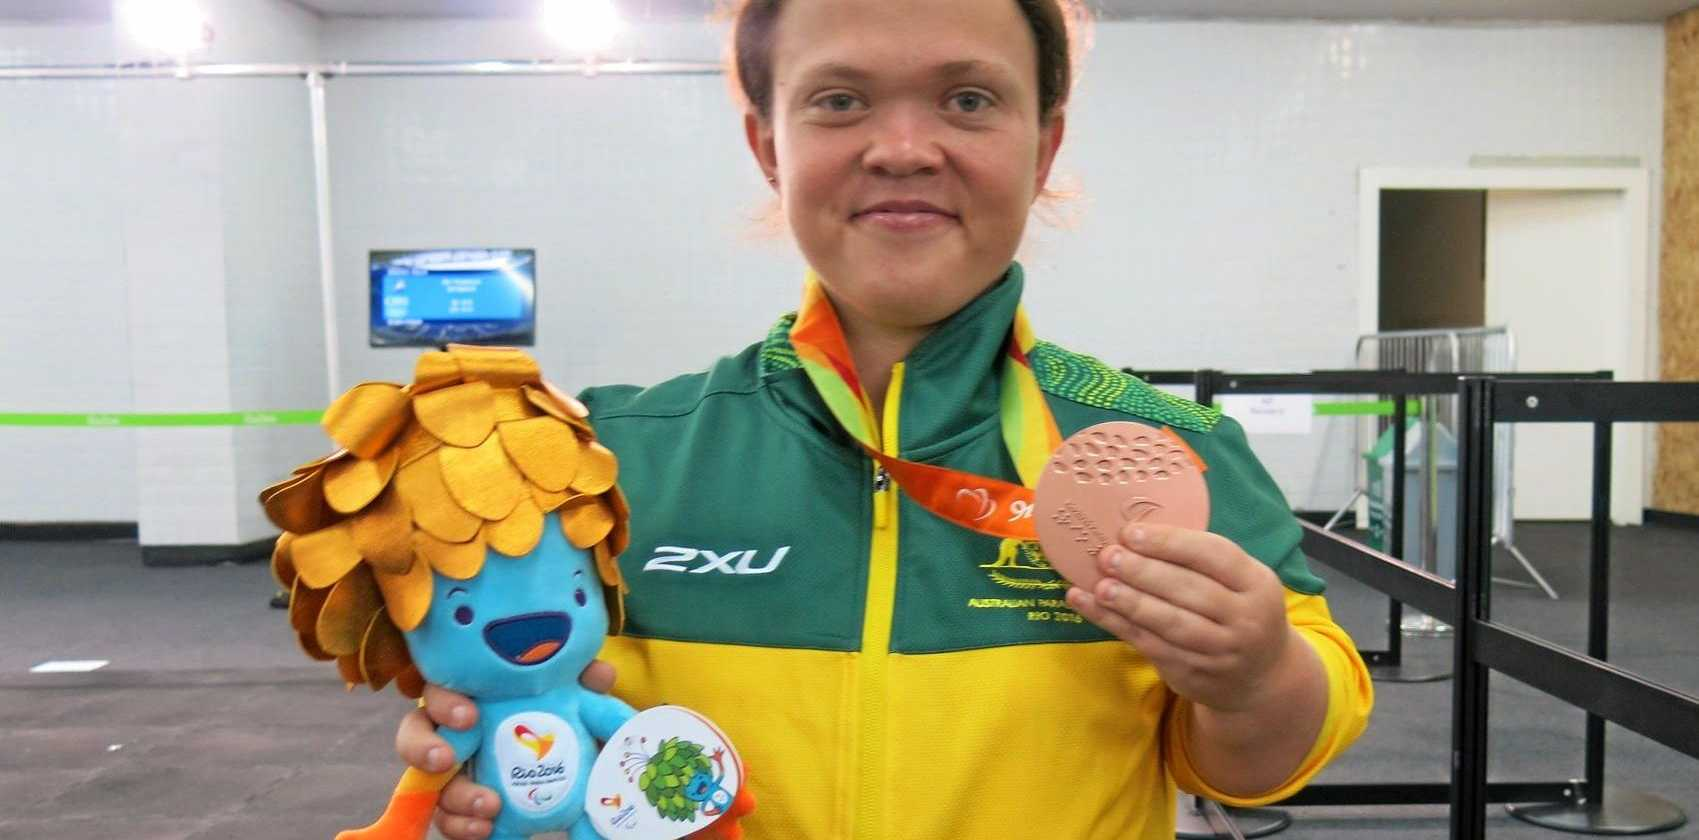 Ipswich and District Athletics Club thrower Claire Keefer won a bronze medal at the Paralympics in Rio.